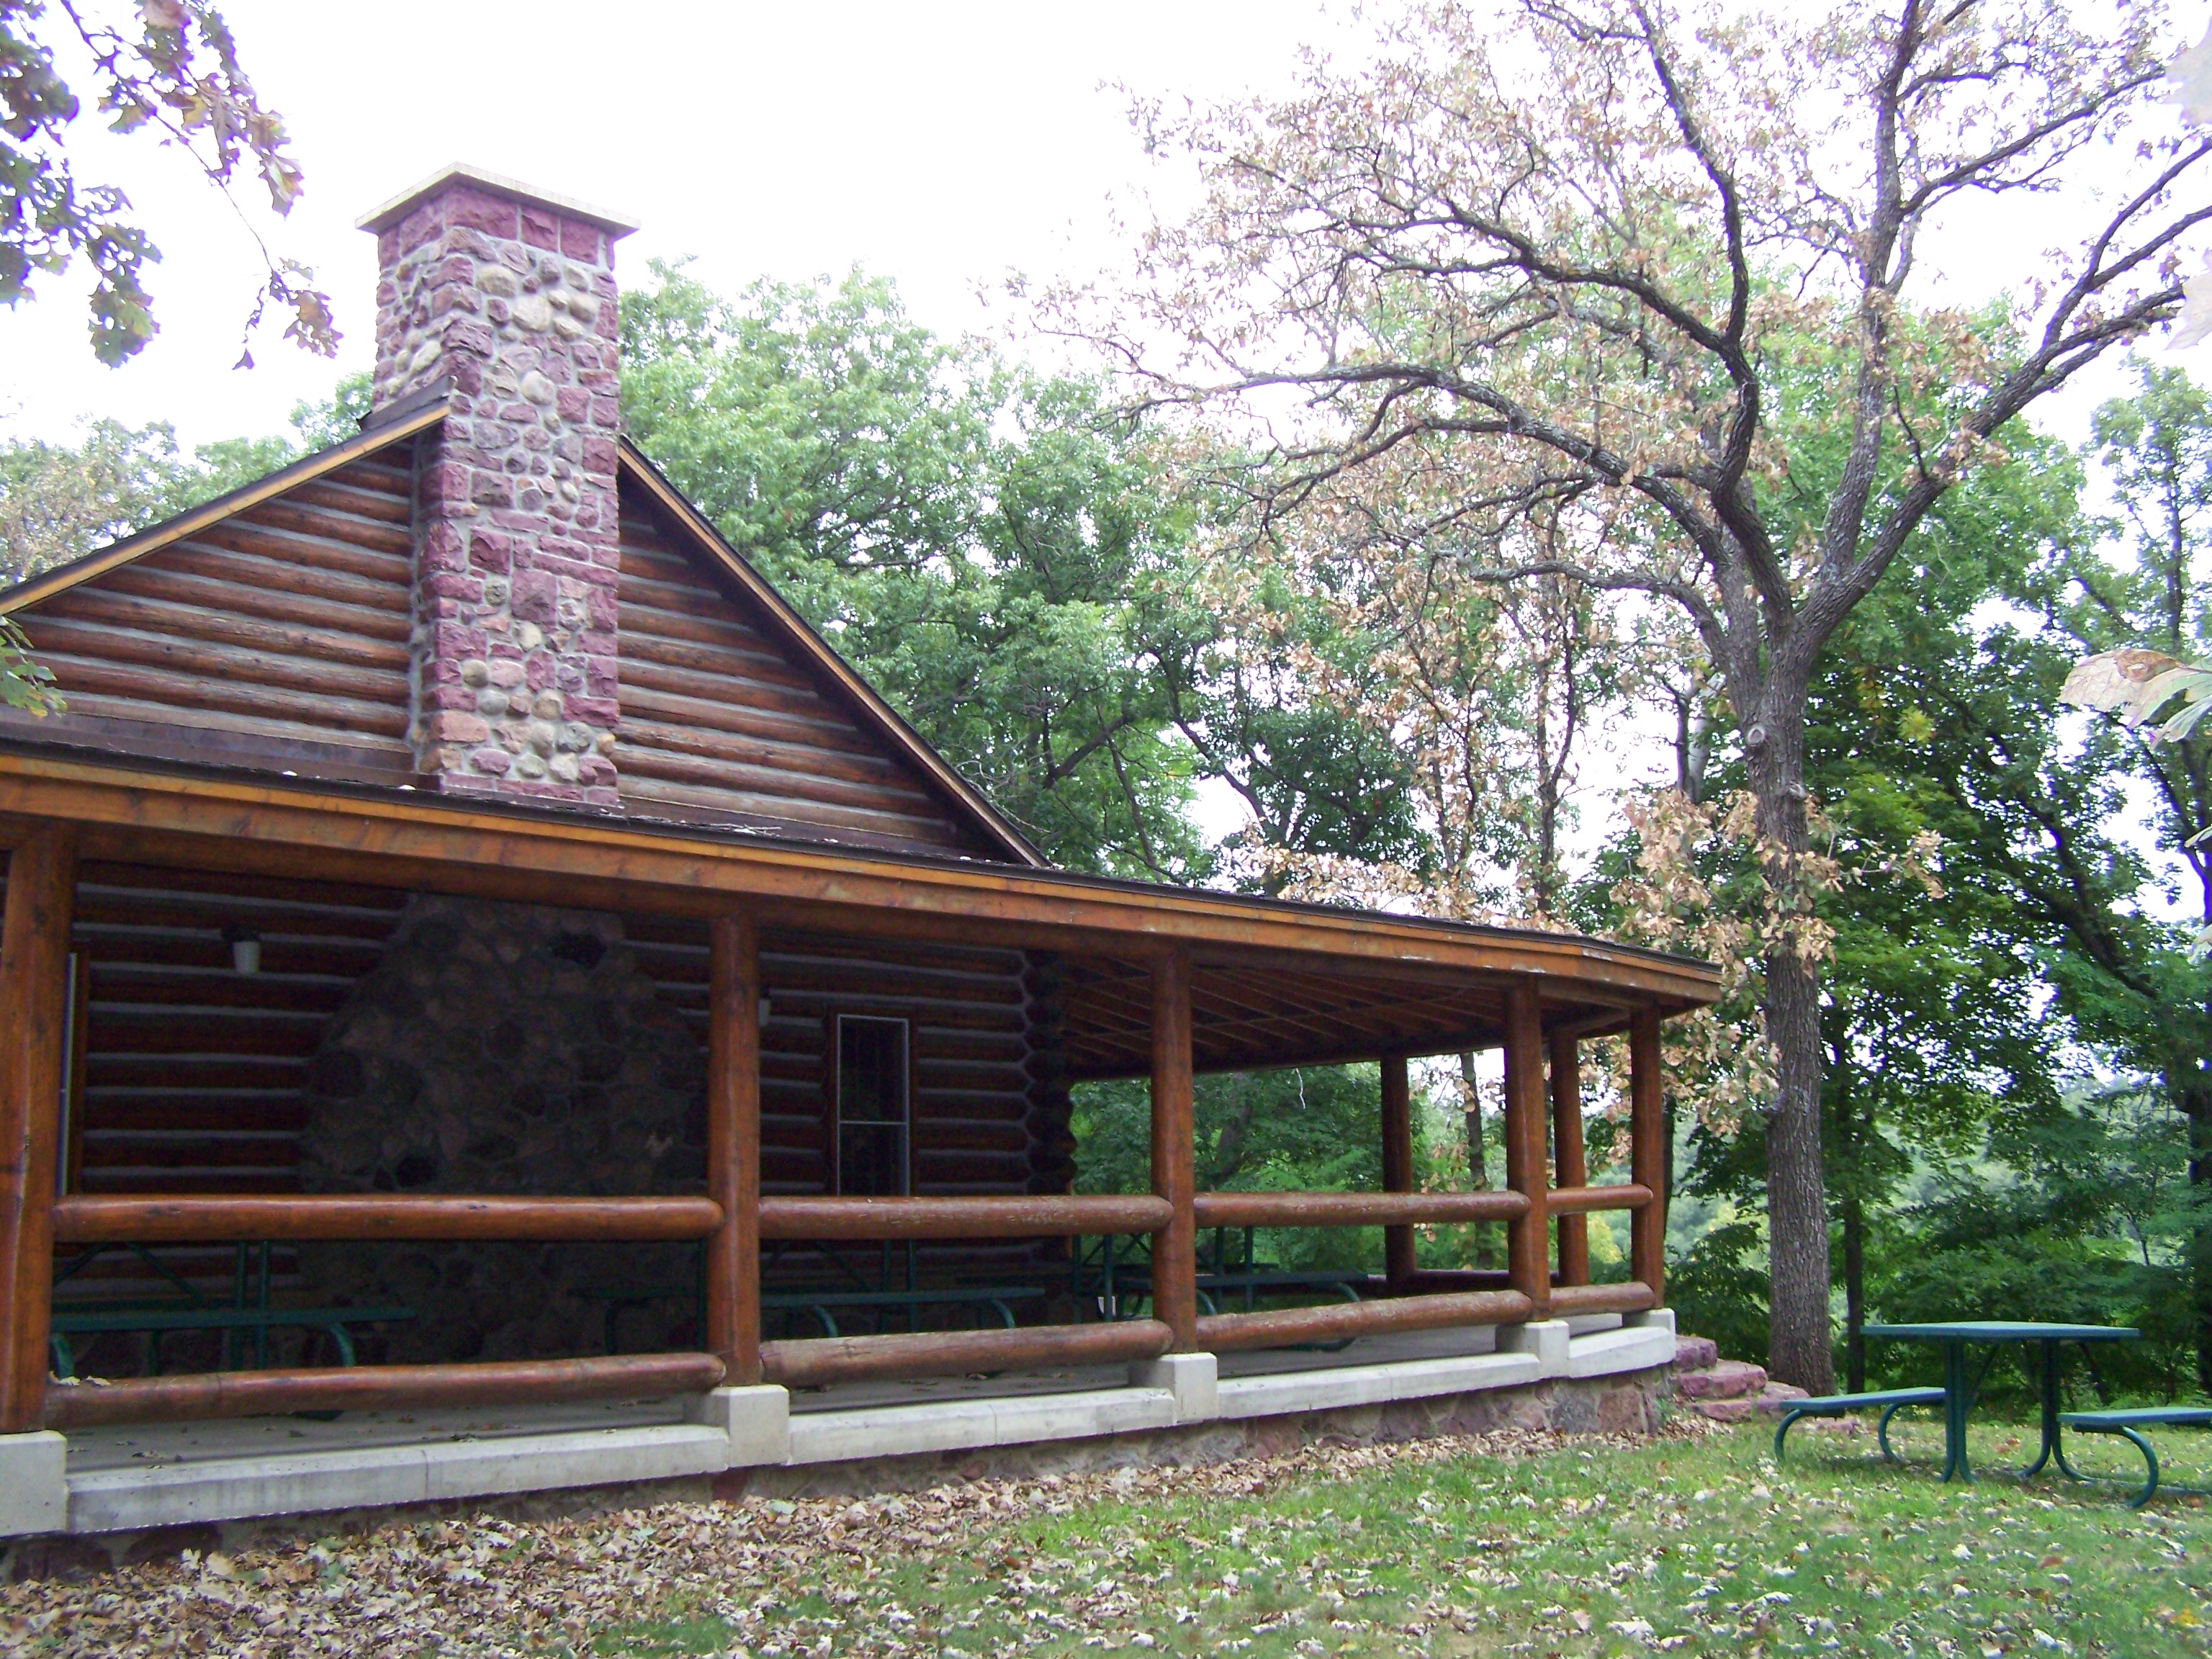 The lodge at Fort Defiance State Park